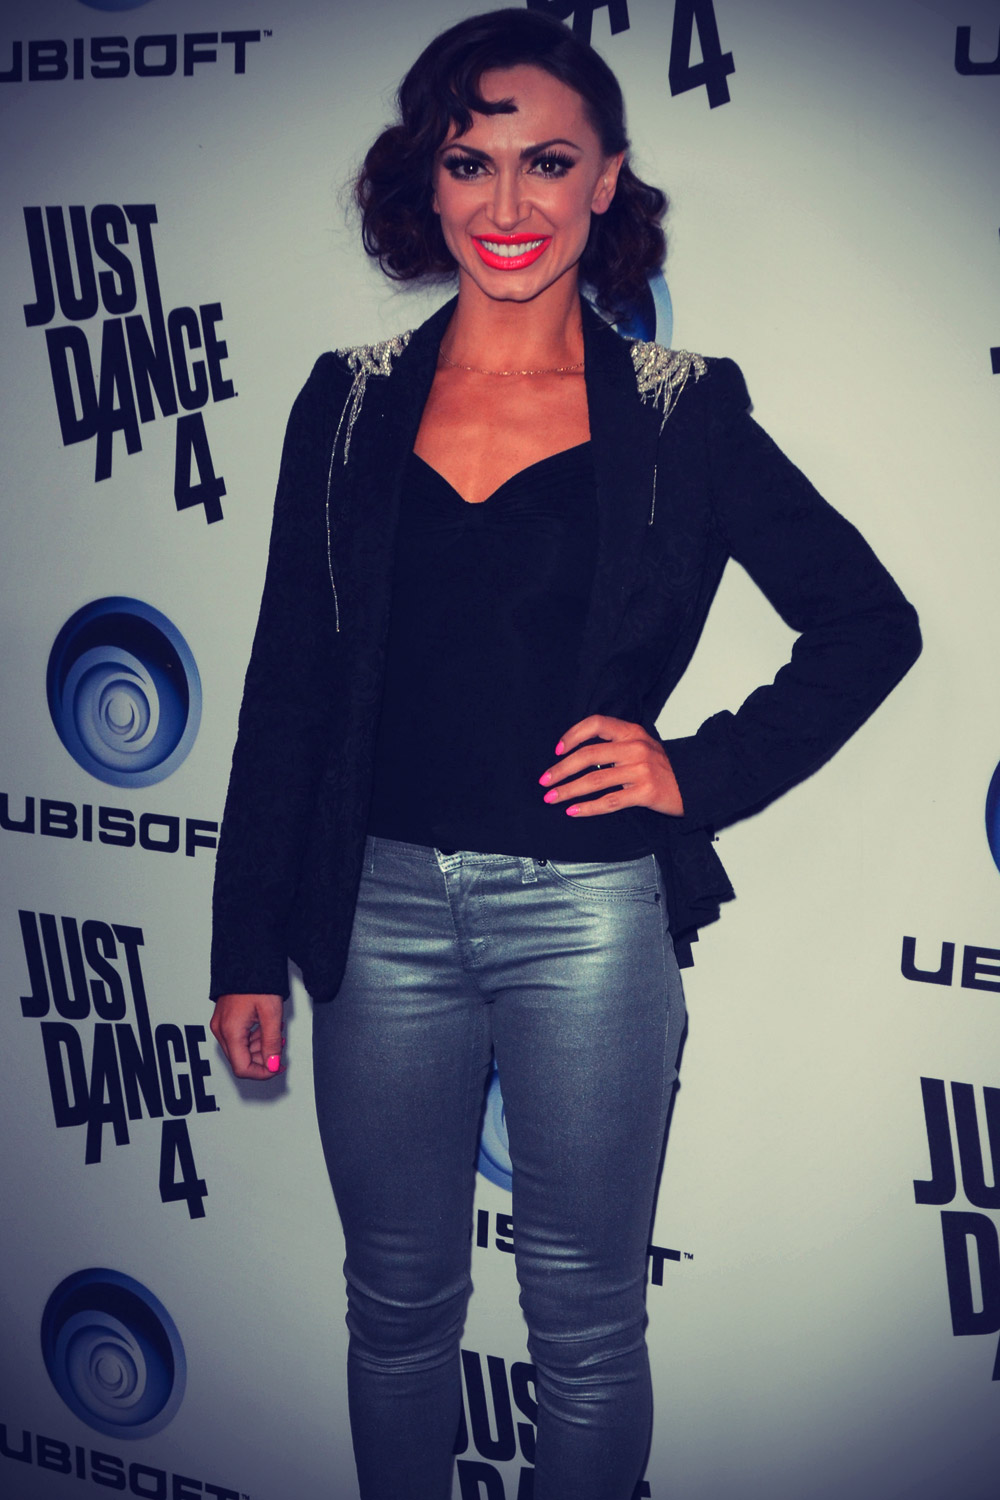 Karina Smirnoff at Ubisoft Presents The Launch Of Just Dance 4